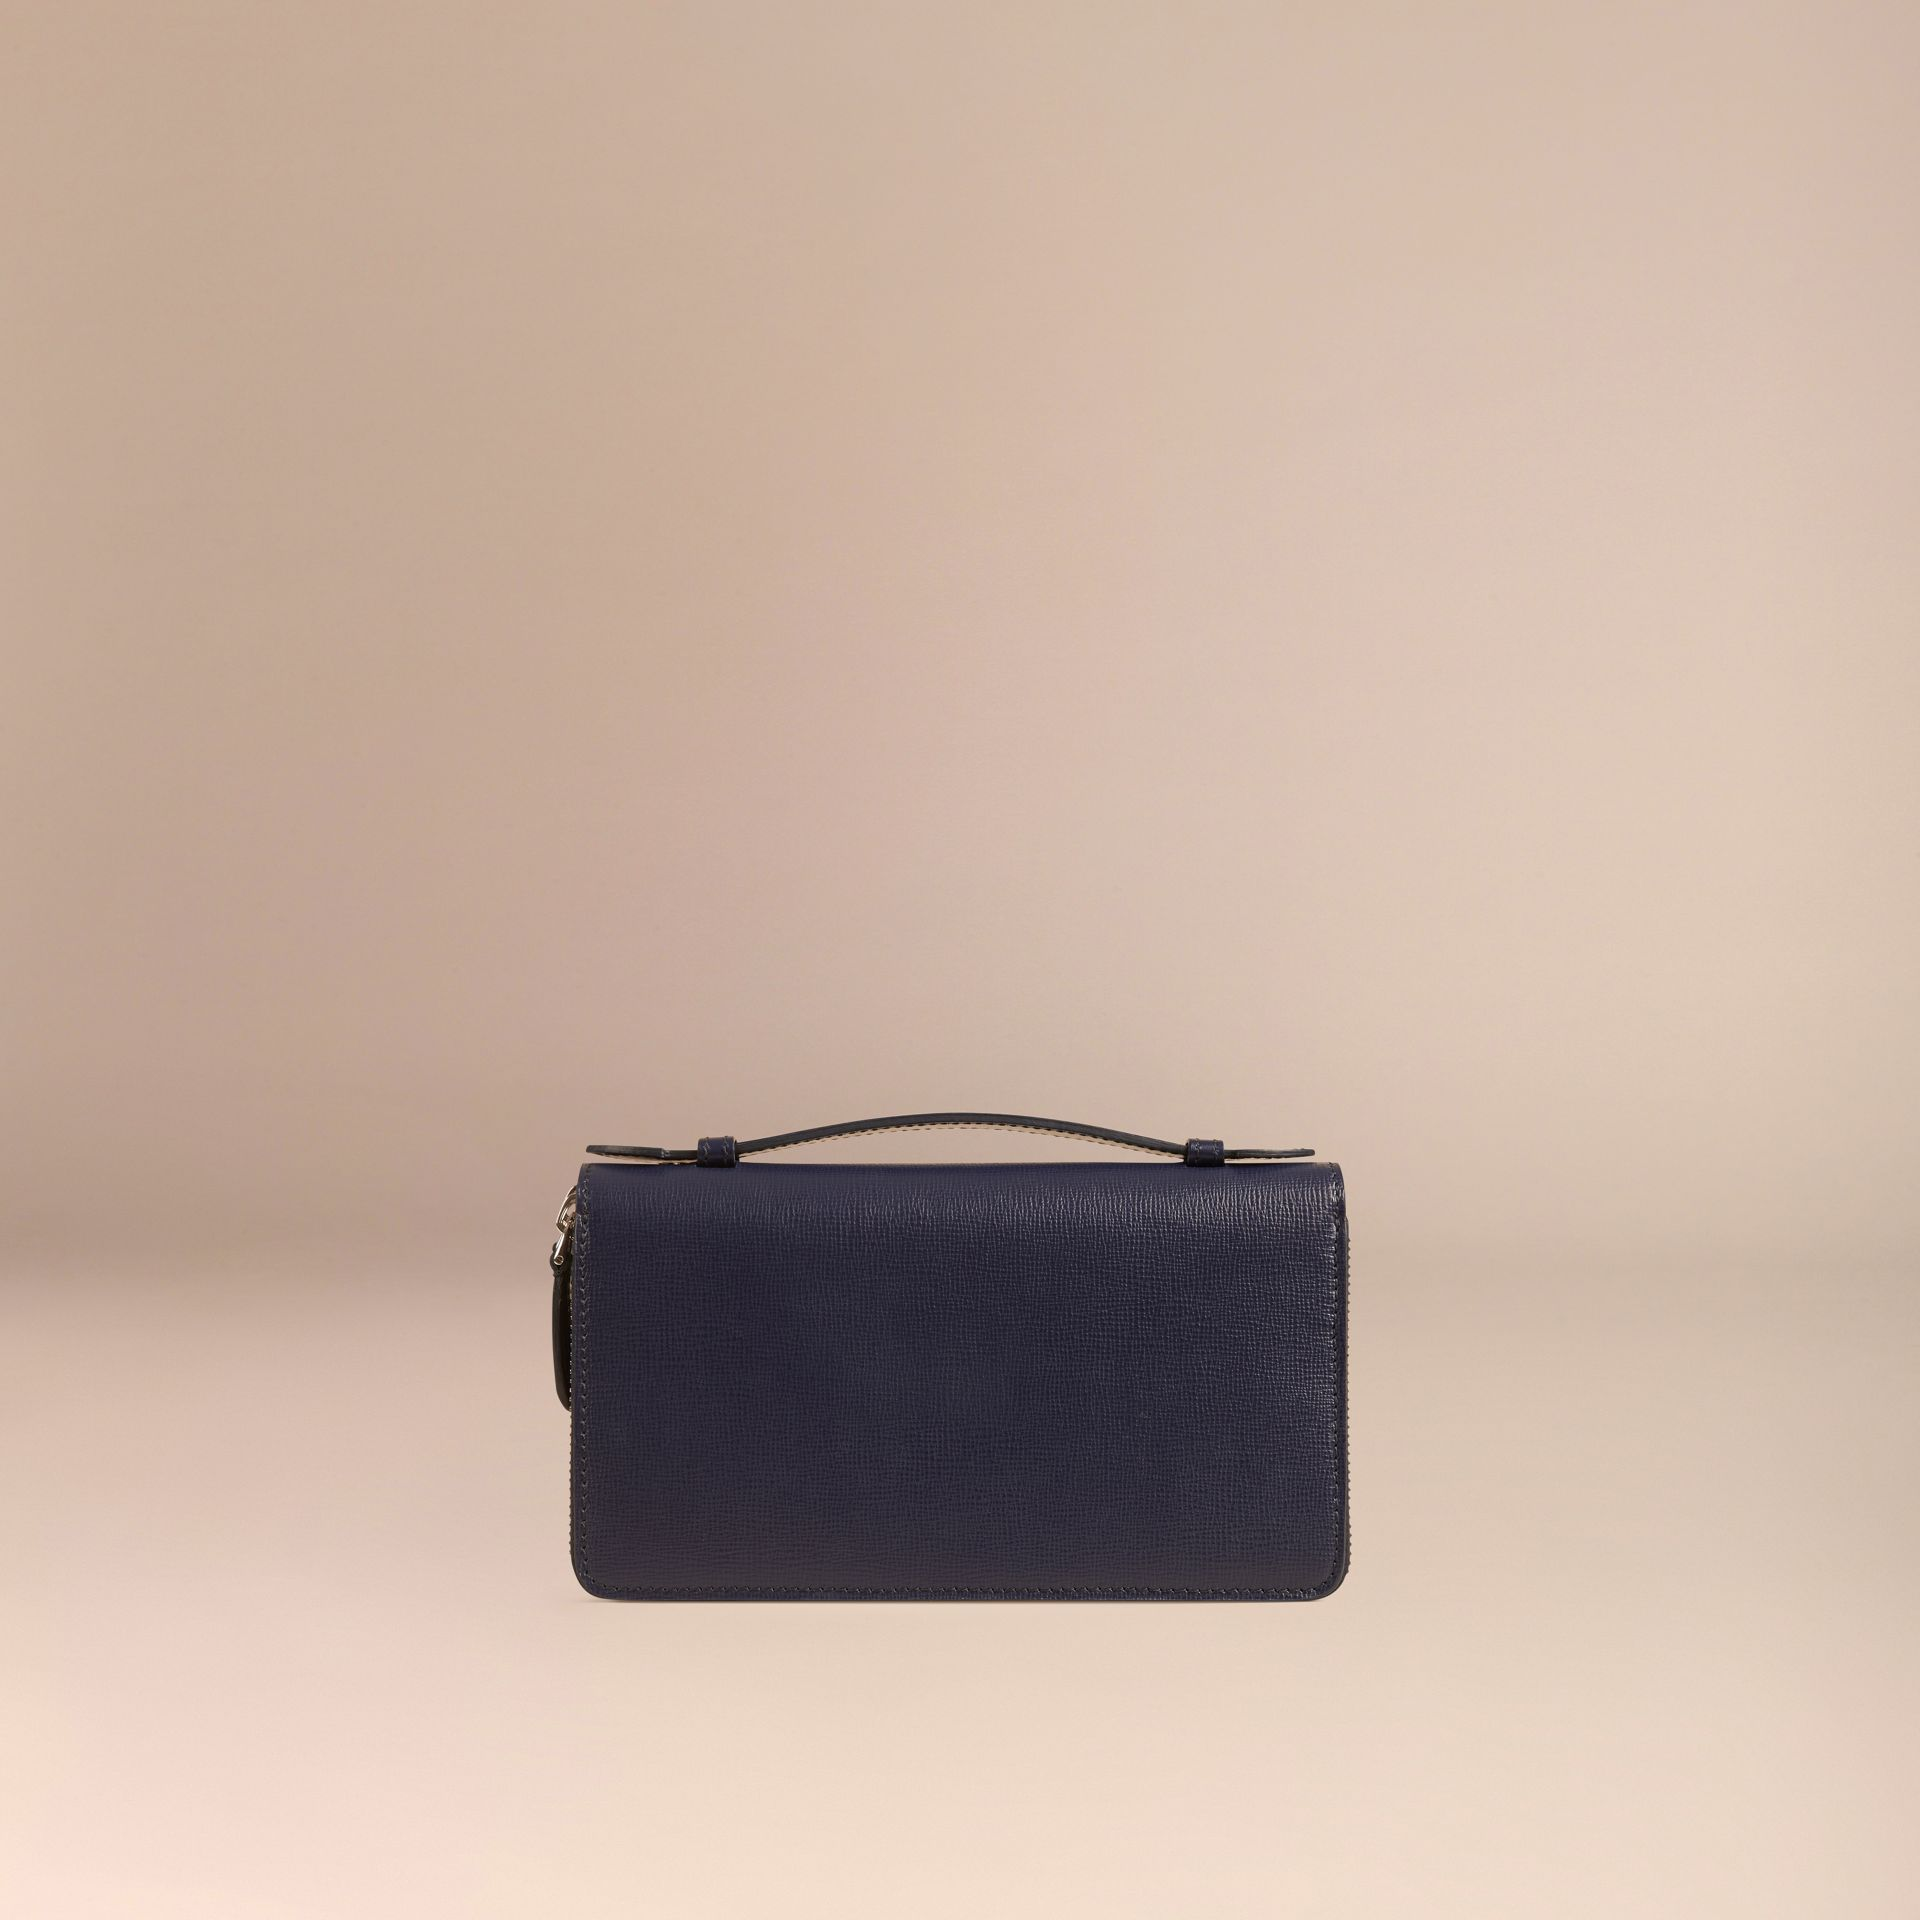 London Leather Travel Wallet in Dark Navy - Men | Burberry Singapore - gallery image 4